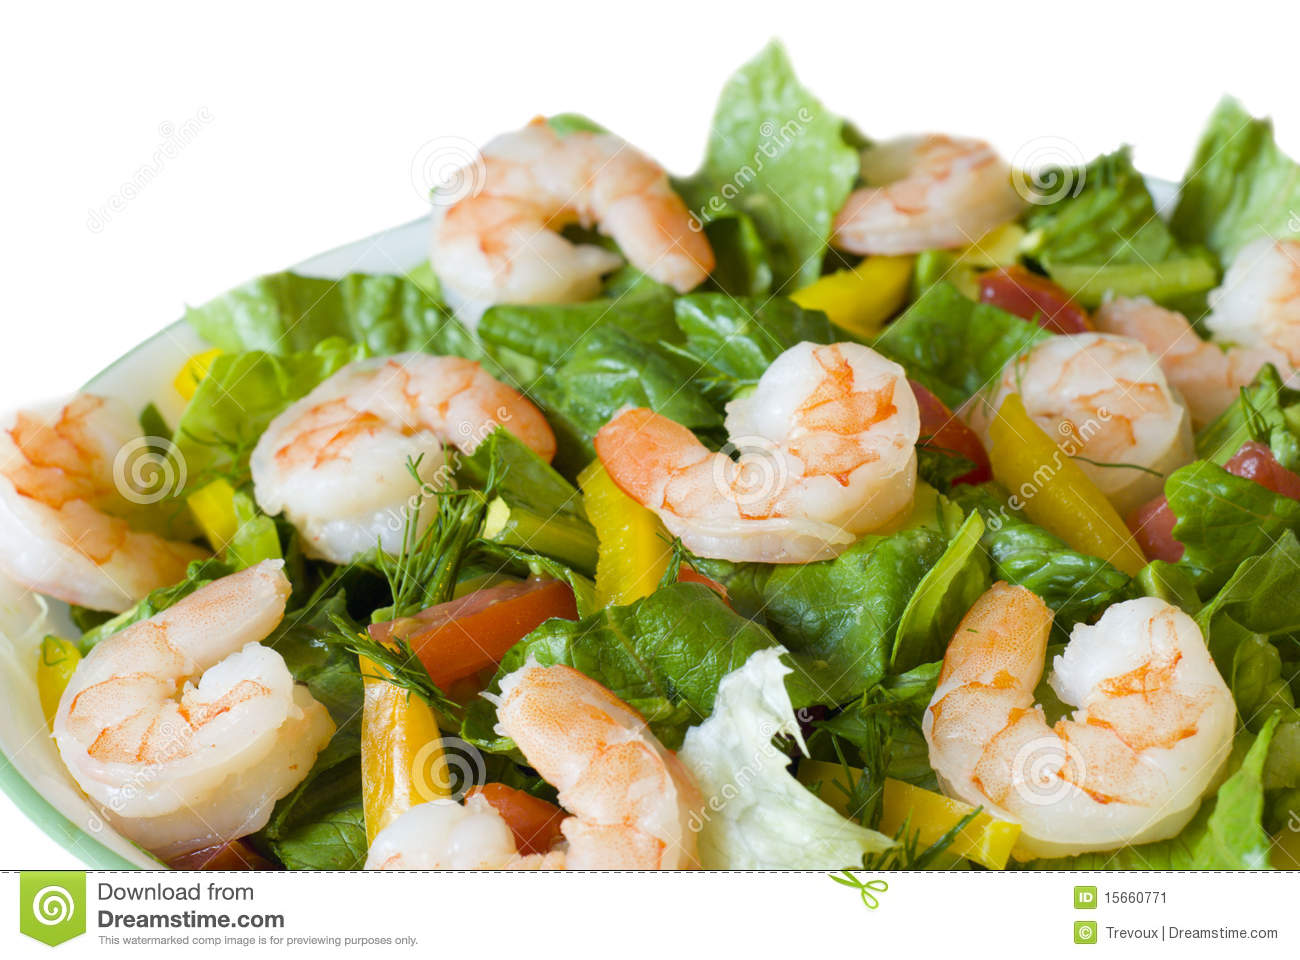 Fresh shrimp salad close-up.